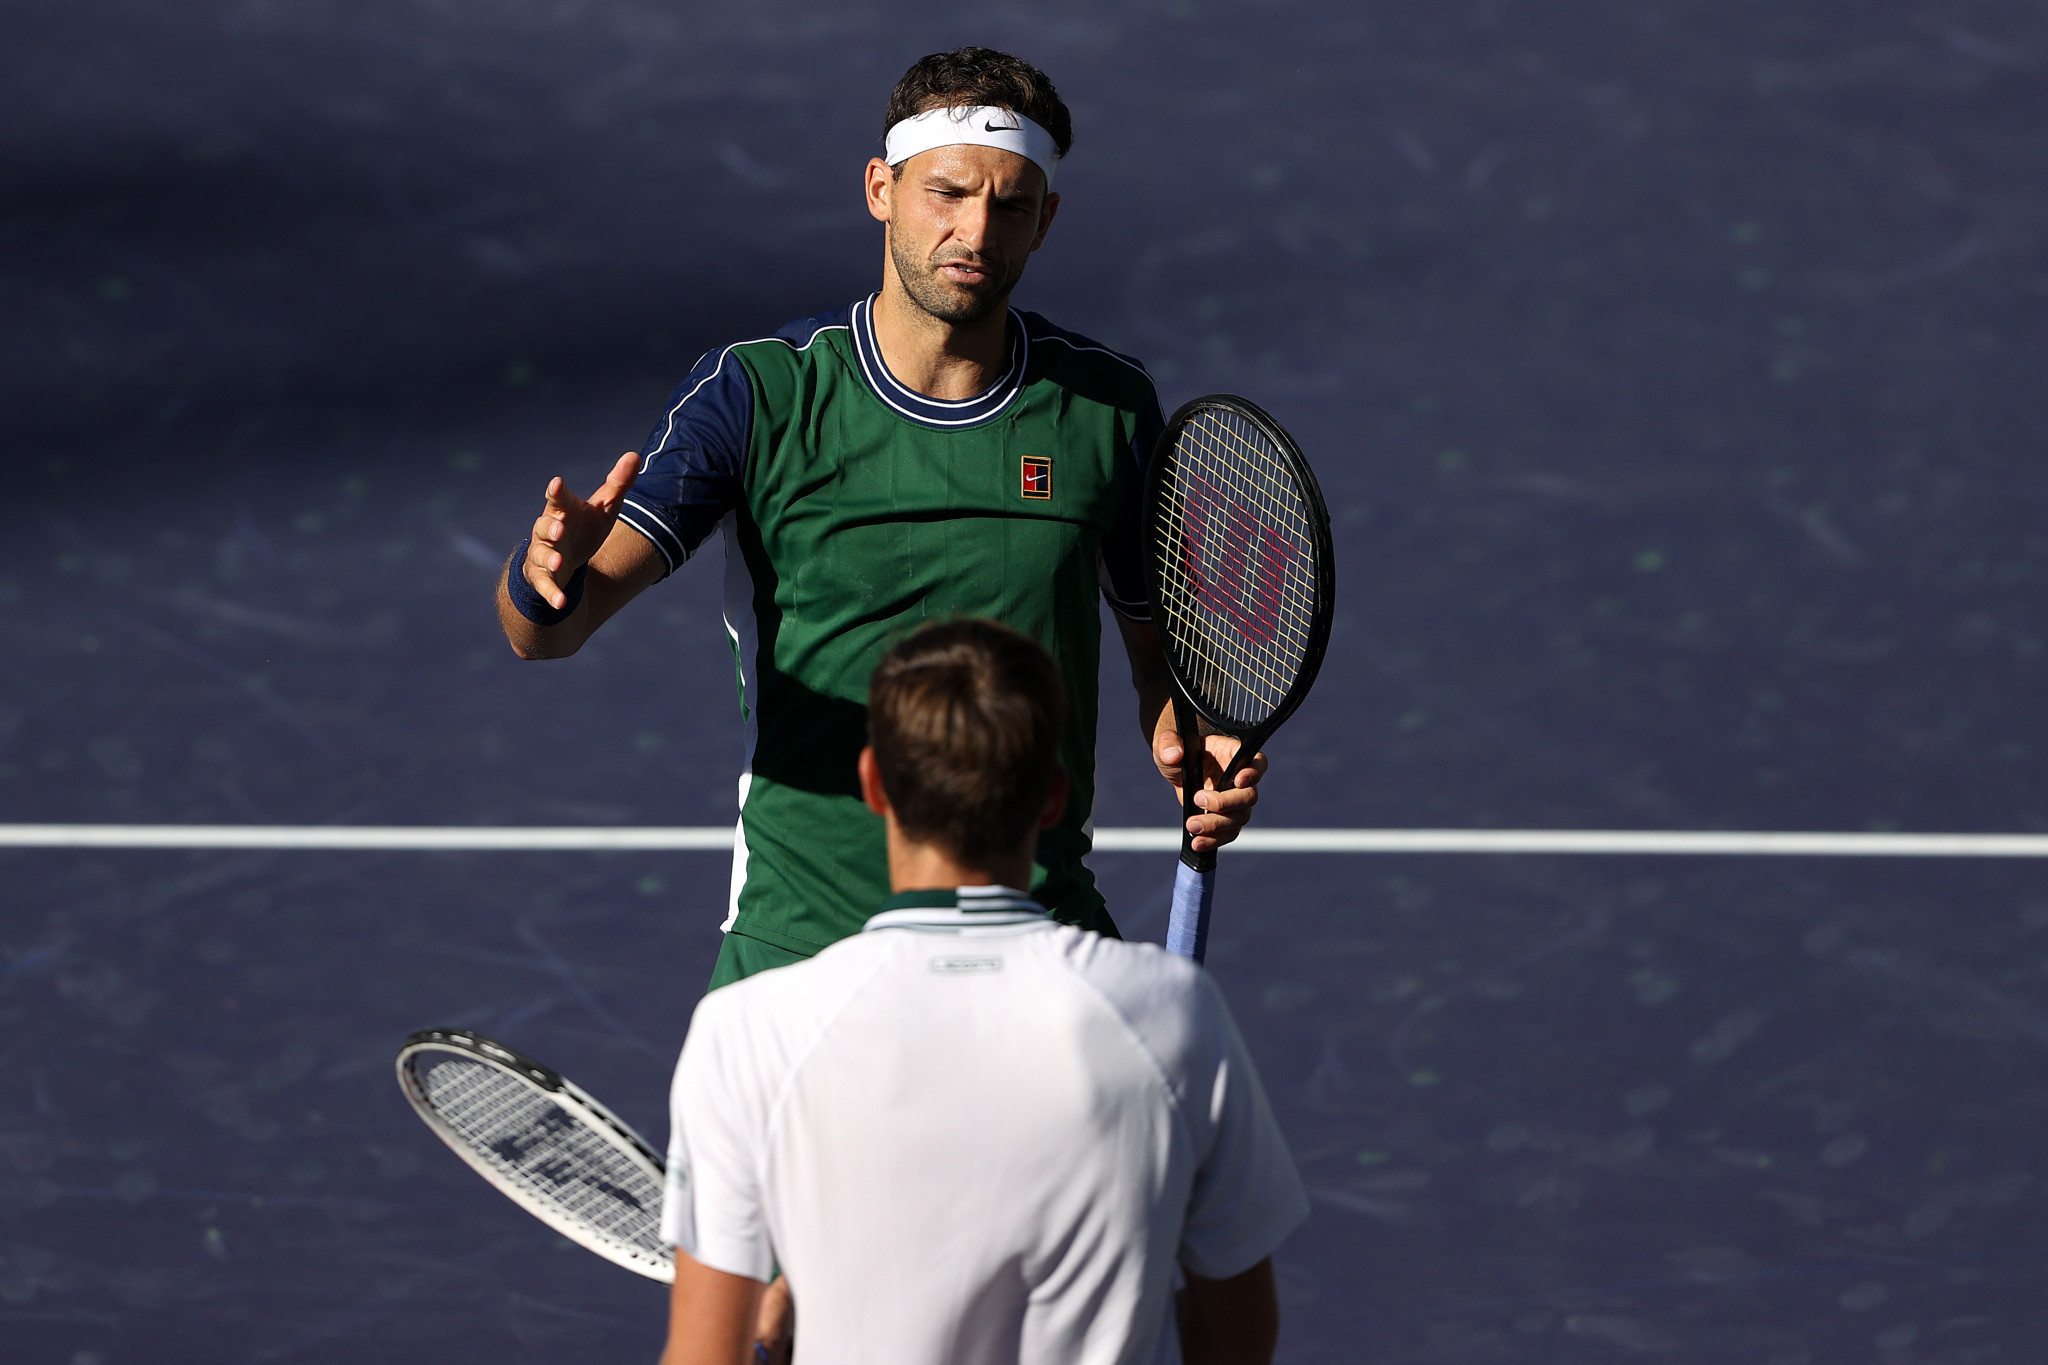 US Open champion Medvedev falls victim to Dimitrov comeback at Indian Wells Masters